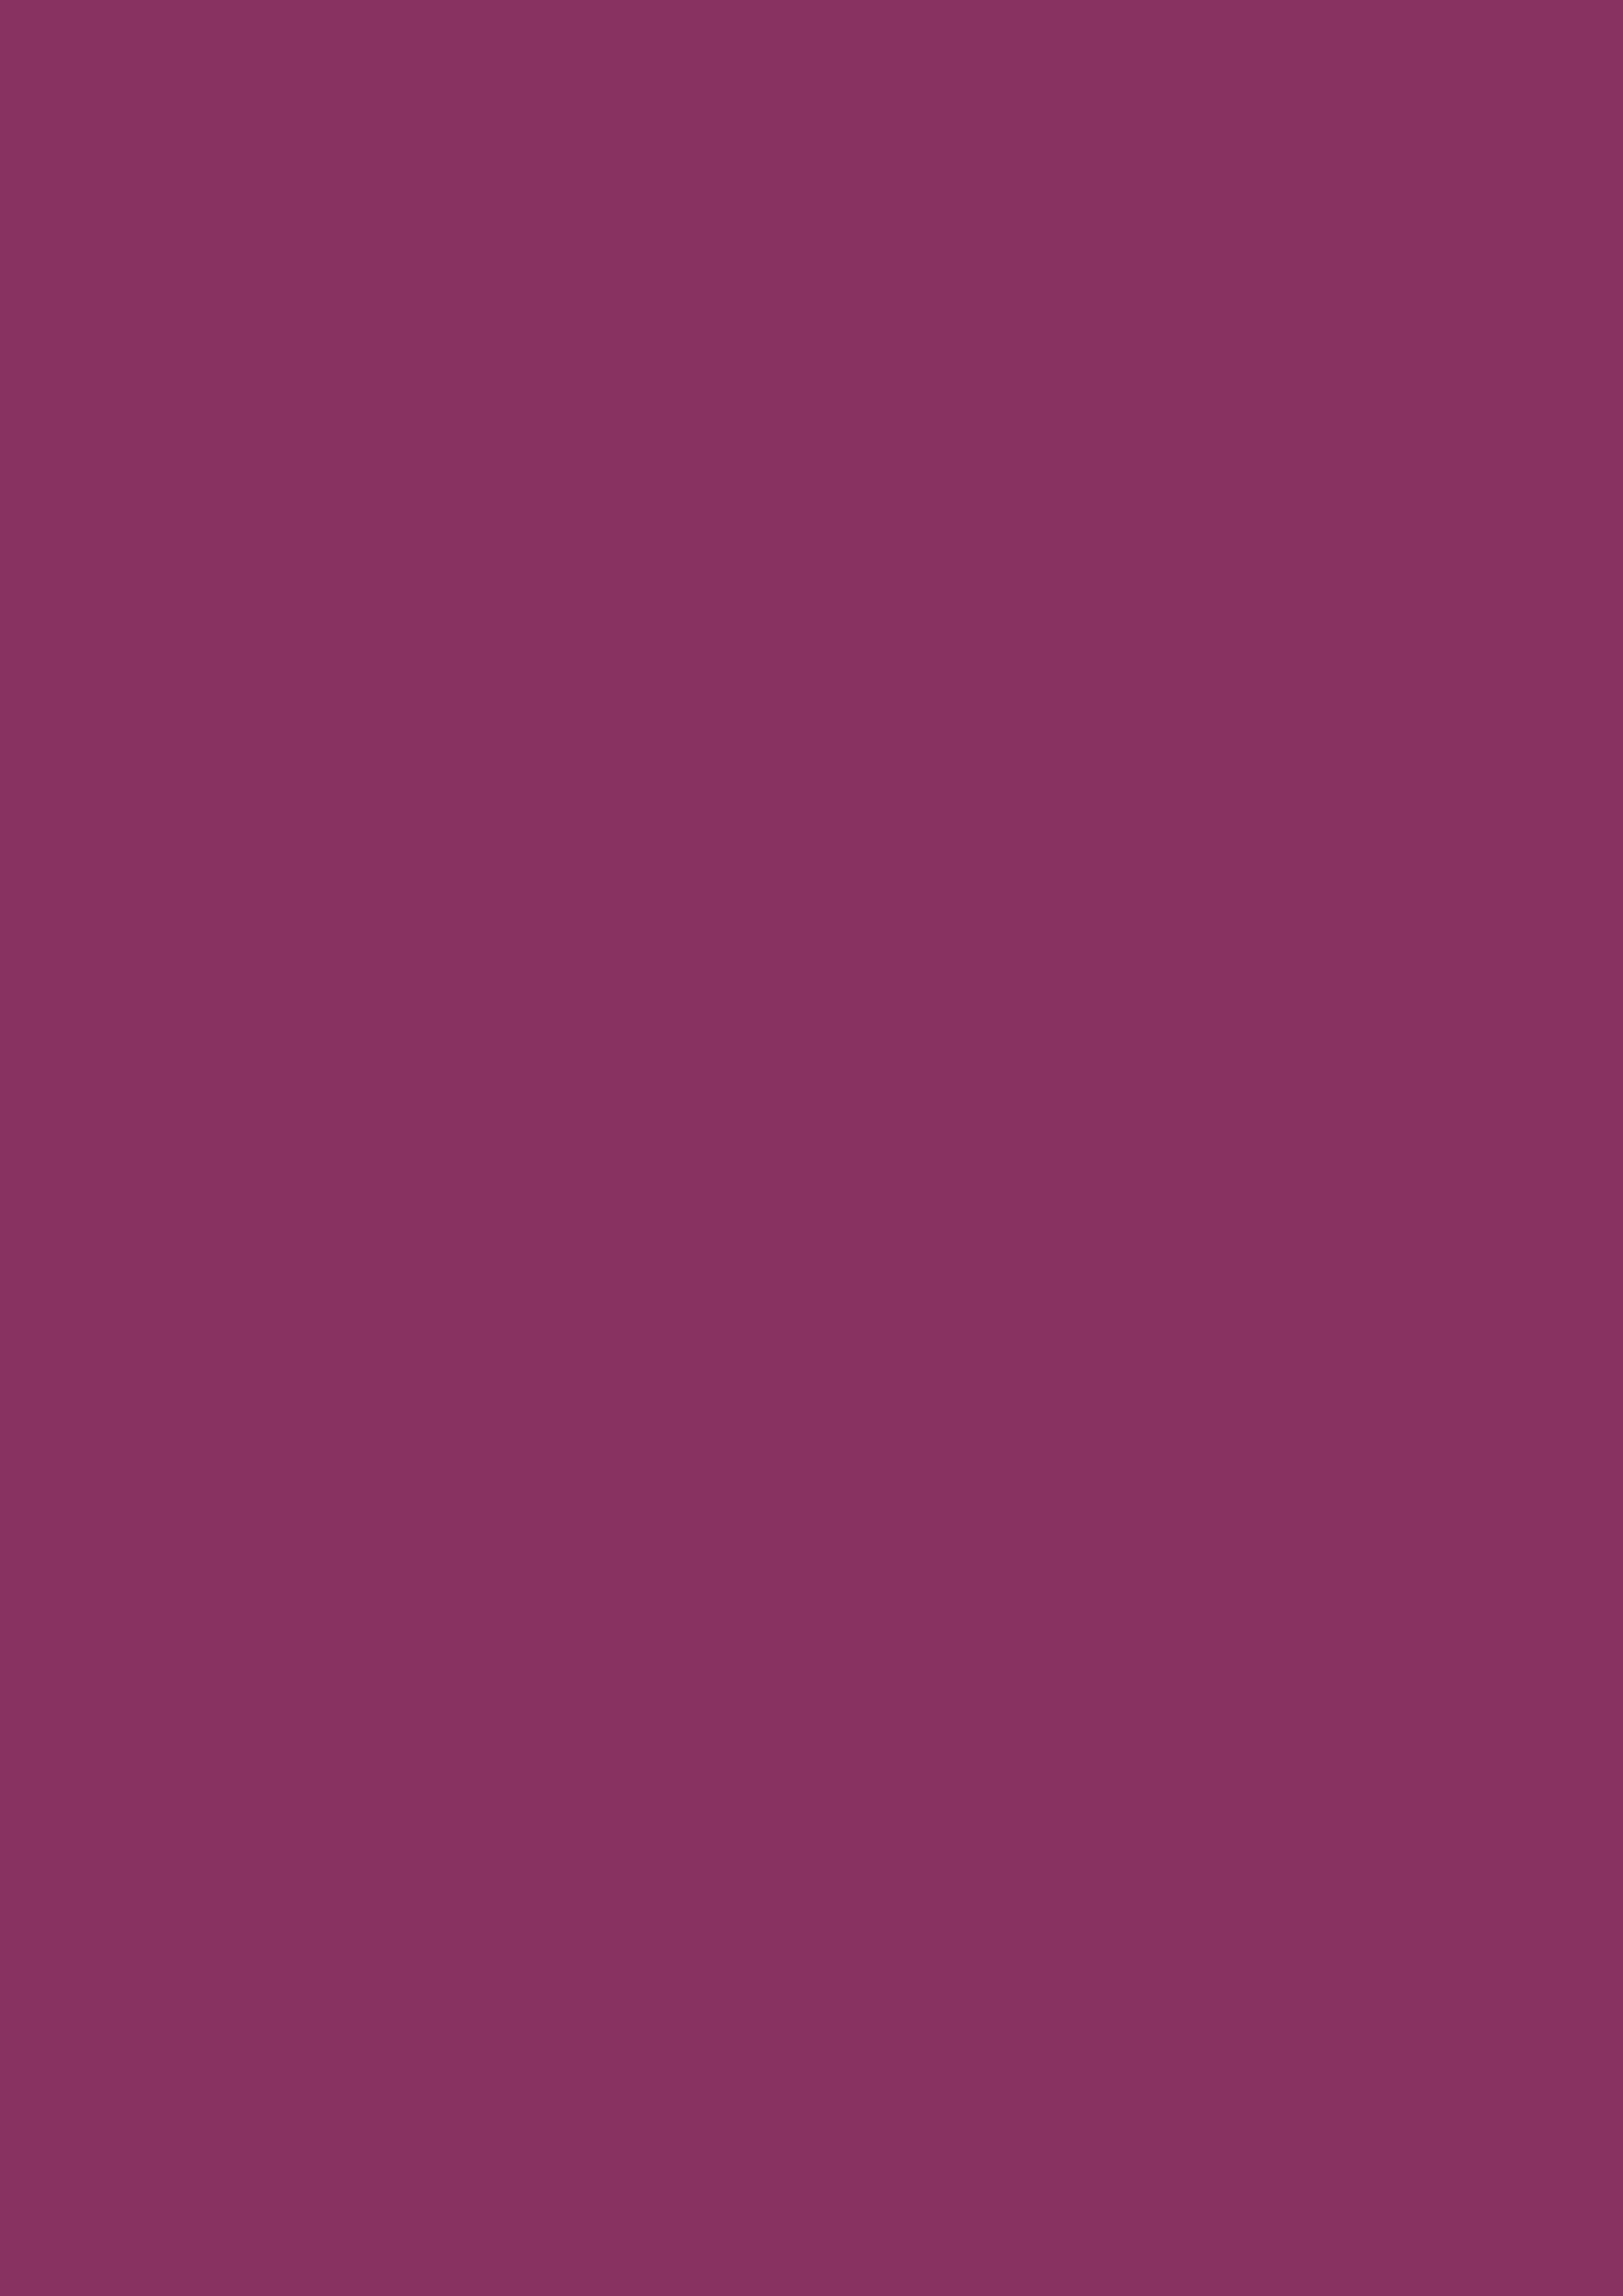 2480x3508 Boysenberry Solid Color Background